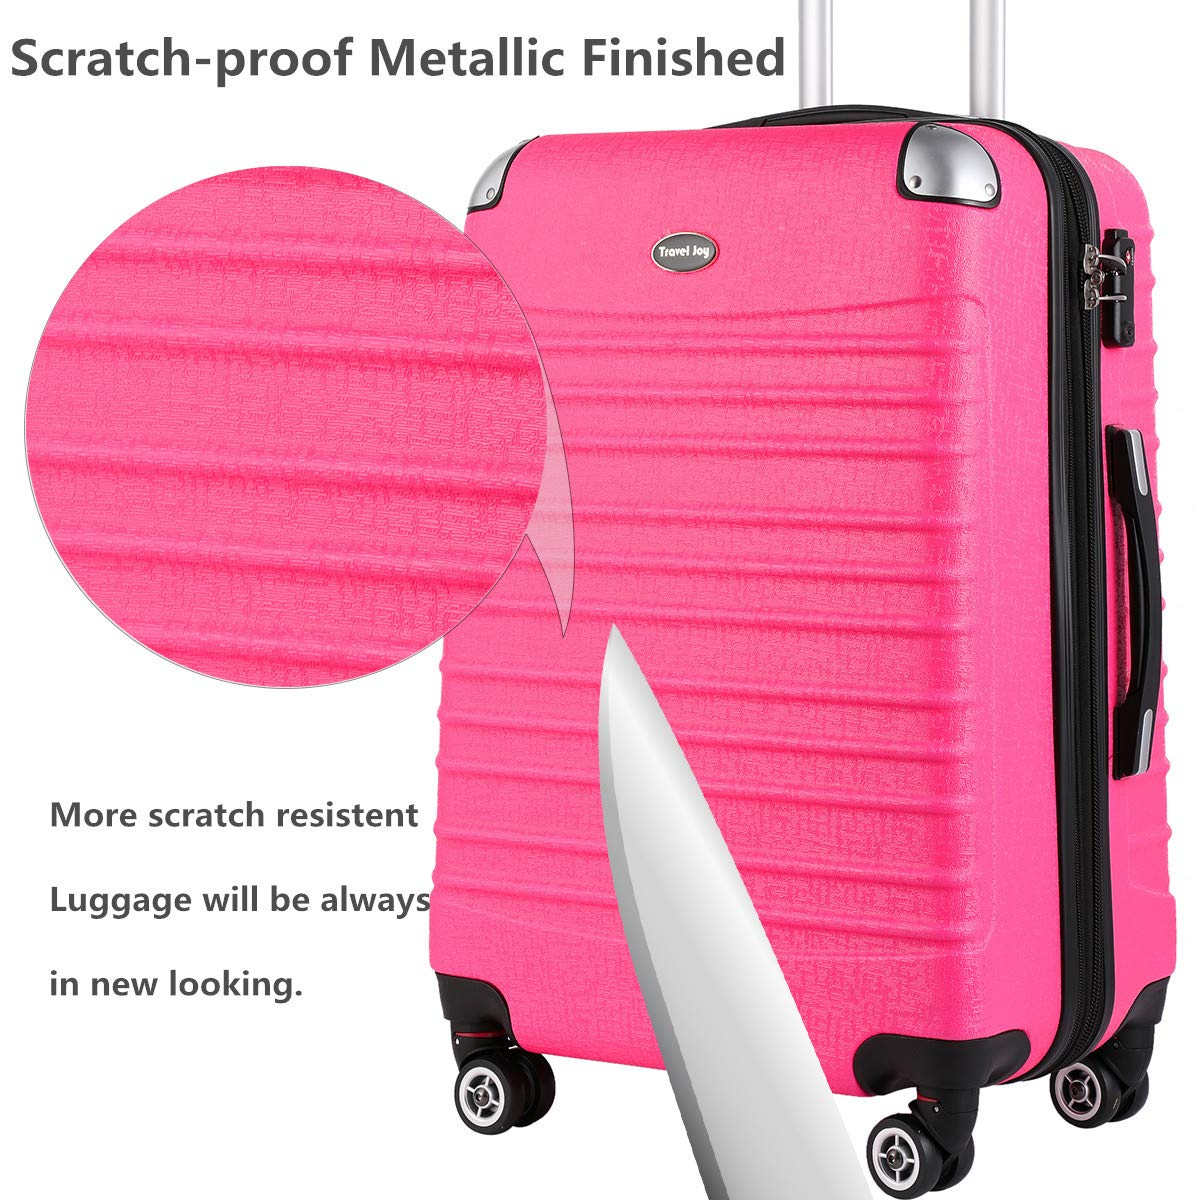 Hardside Carry On Luggage, Lightweight Expandable Spinner Carry Ons TSA Luggage Suitcase, 20 inches (HOT PINK) by Travel Joy (Image #6)